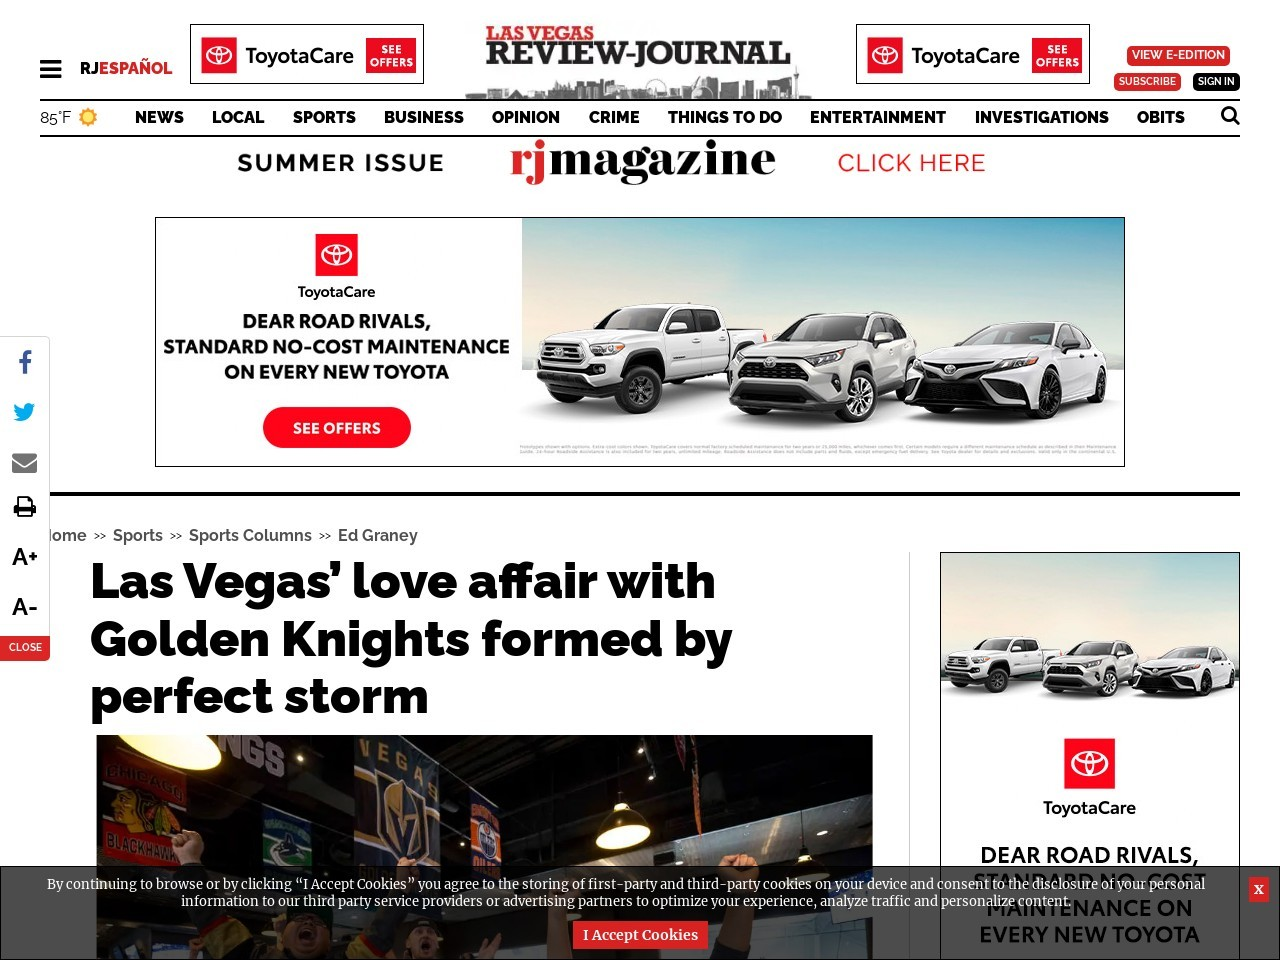 Las Vegas' love affair with Golden Knights formed by perfect storm